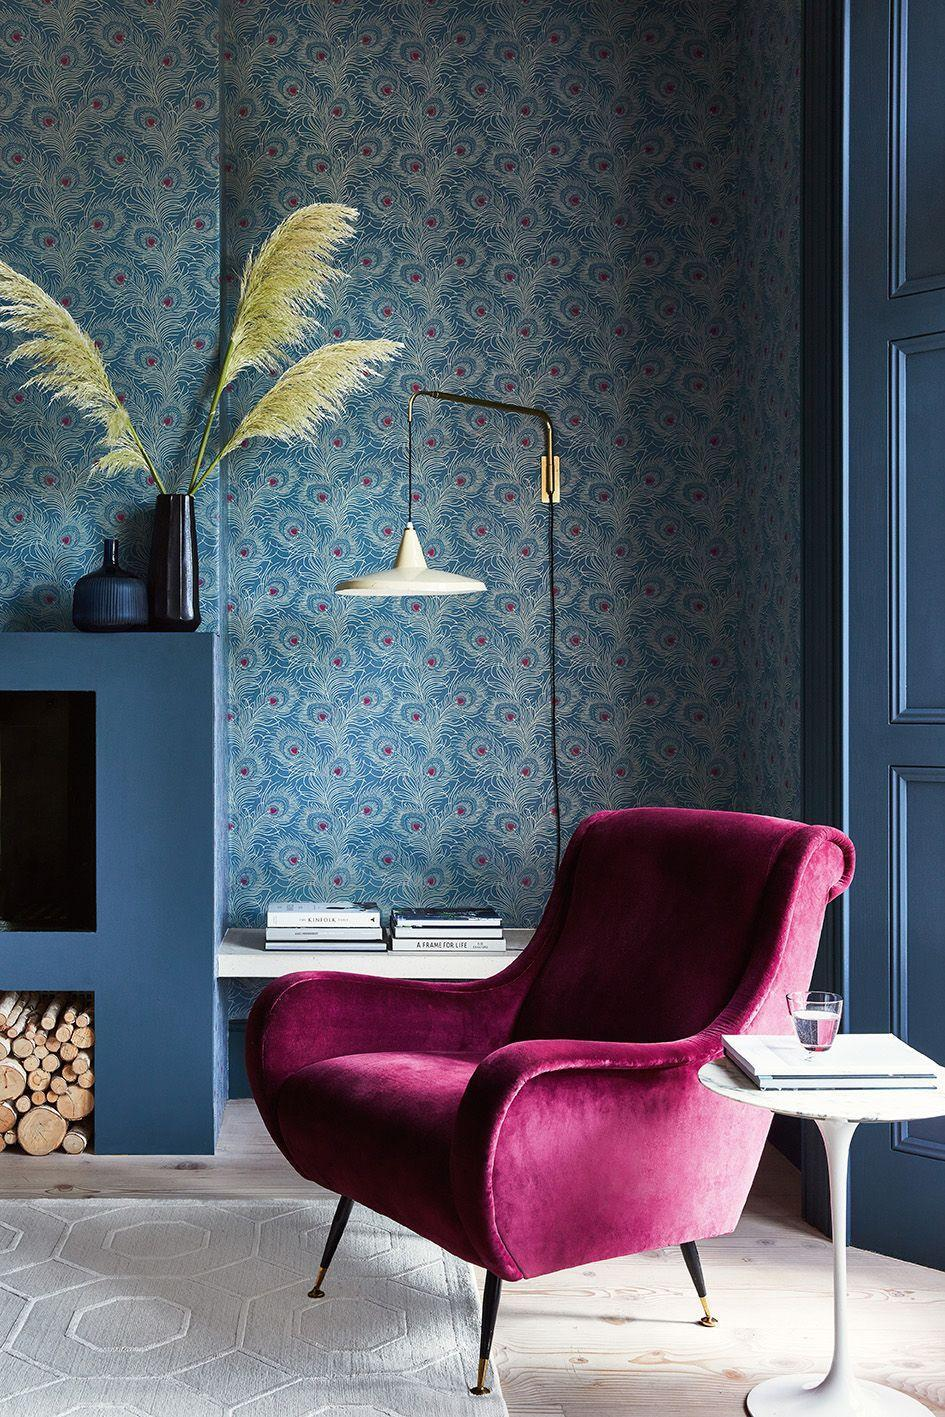 """<p>The colour blue can make you feel calm and relaxed or vibrant and energised, and can work well in a living room. Complement an all-blue scheme with blue paint on doors and around fireplaces, and printed wallpaper on the four walls. This flamboyant peacock feather design provides a splash of colour.</p><p>Pictured: Carlton House Terrace - Blue Plume, <a href=""""https://www.littlegreene.com/wallpaper/collection/london-wallpapers/v/carlton-house-terrace/carlton-house-terrace-blue-plume"""" rel=""""nofollow noopener"""" target=""""_blank"""" data-ylk=""""slk:Little Greene"""" class=""""link rapid-noclick-resp"""">Little Greene</a></p>"""